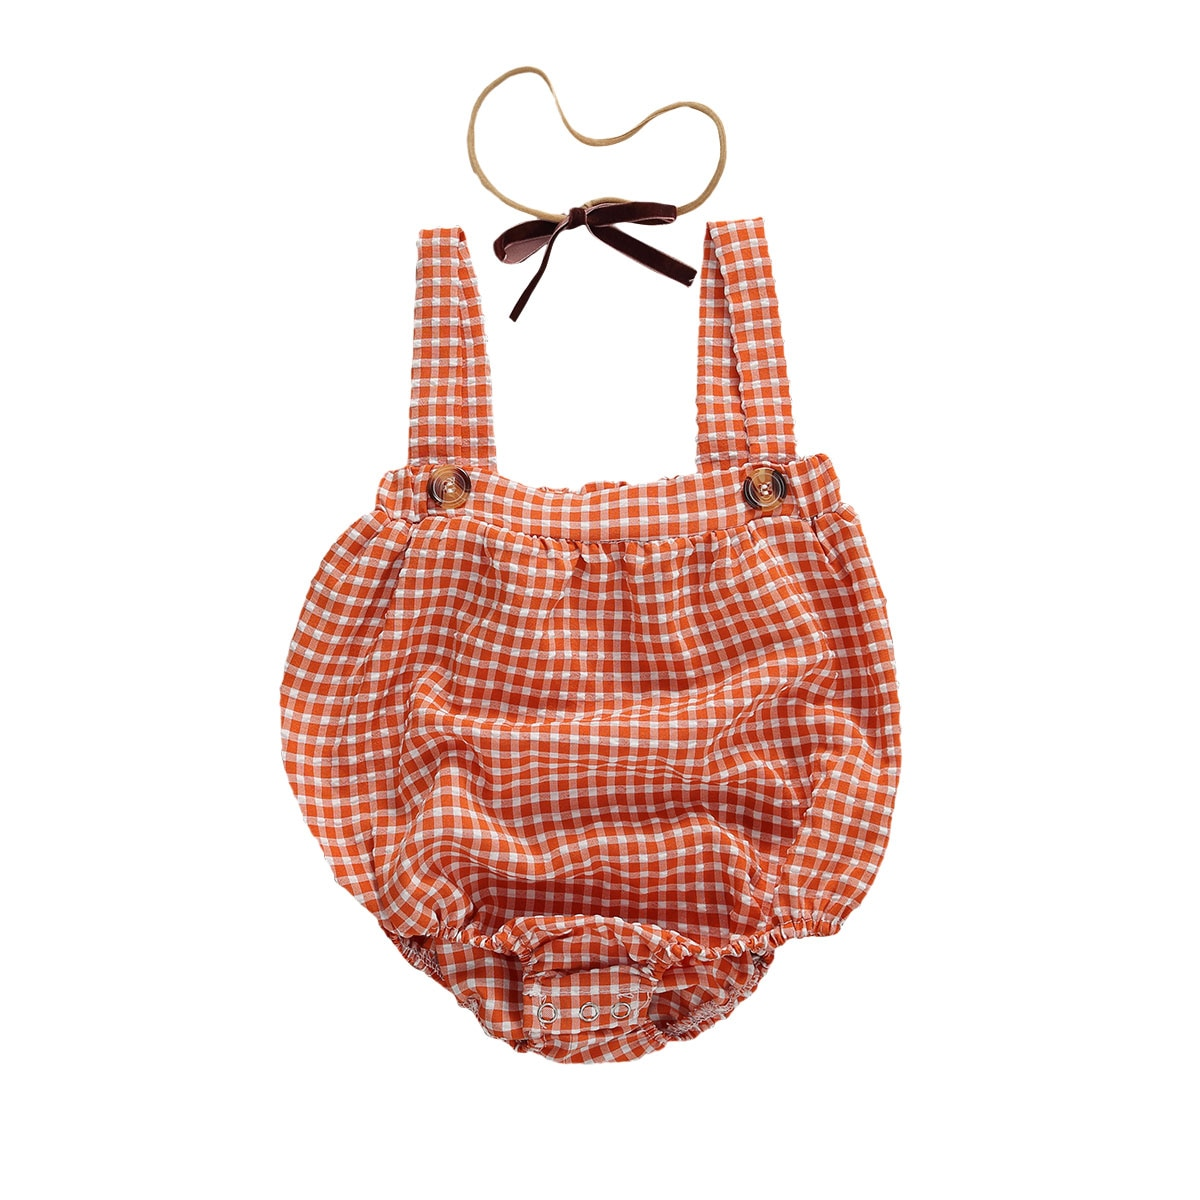 Baby Girls Romper Cotton Sling Loose Plaid Pattern Cute Style Button Closure Jumpsuit Patchwork Romp